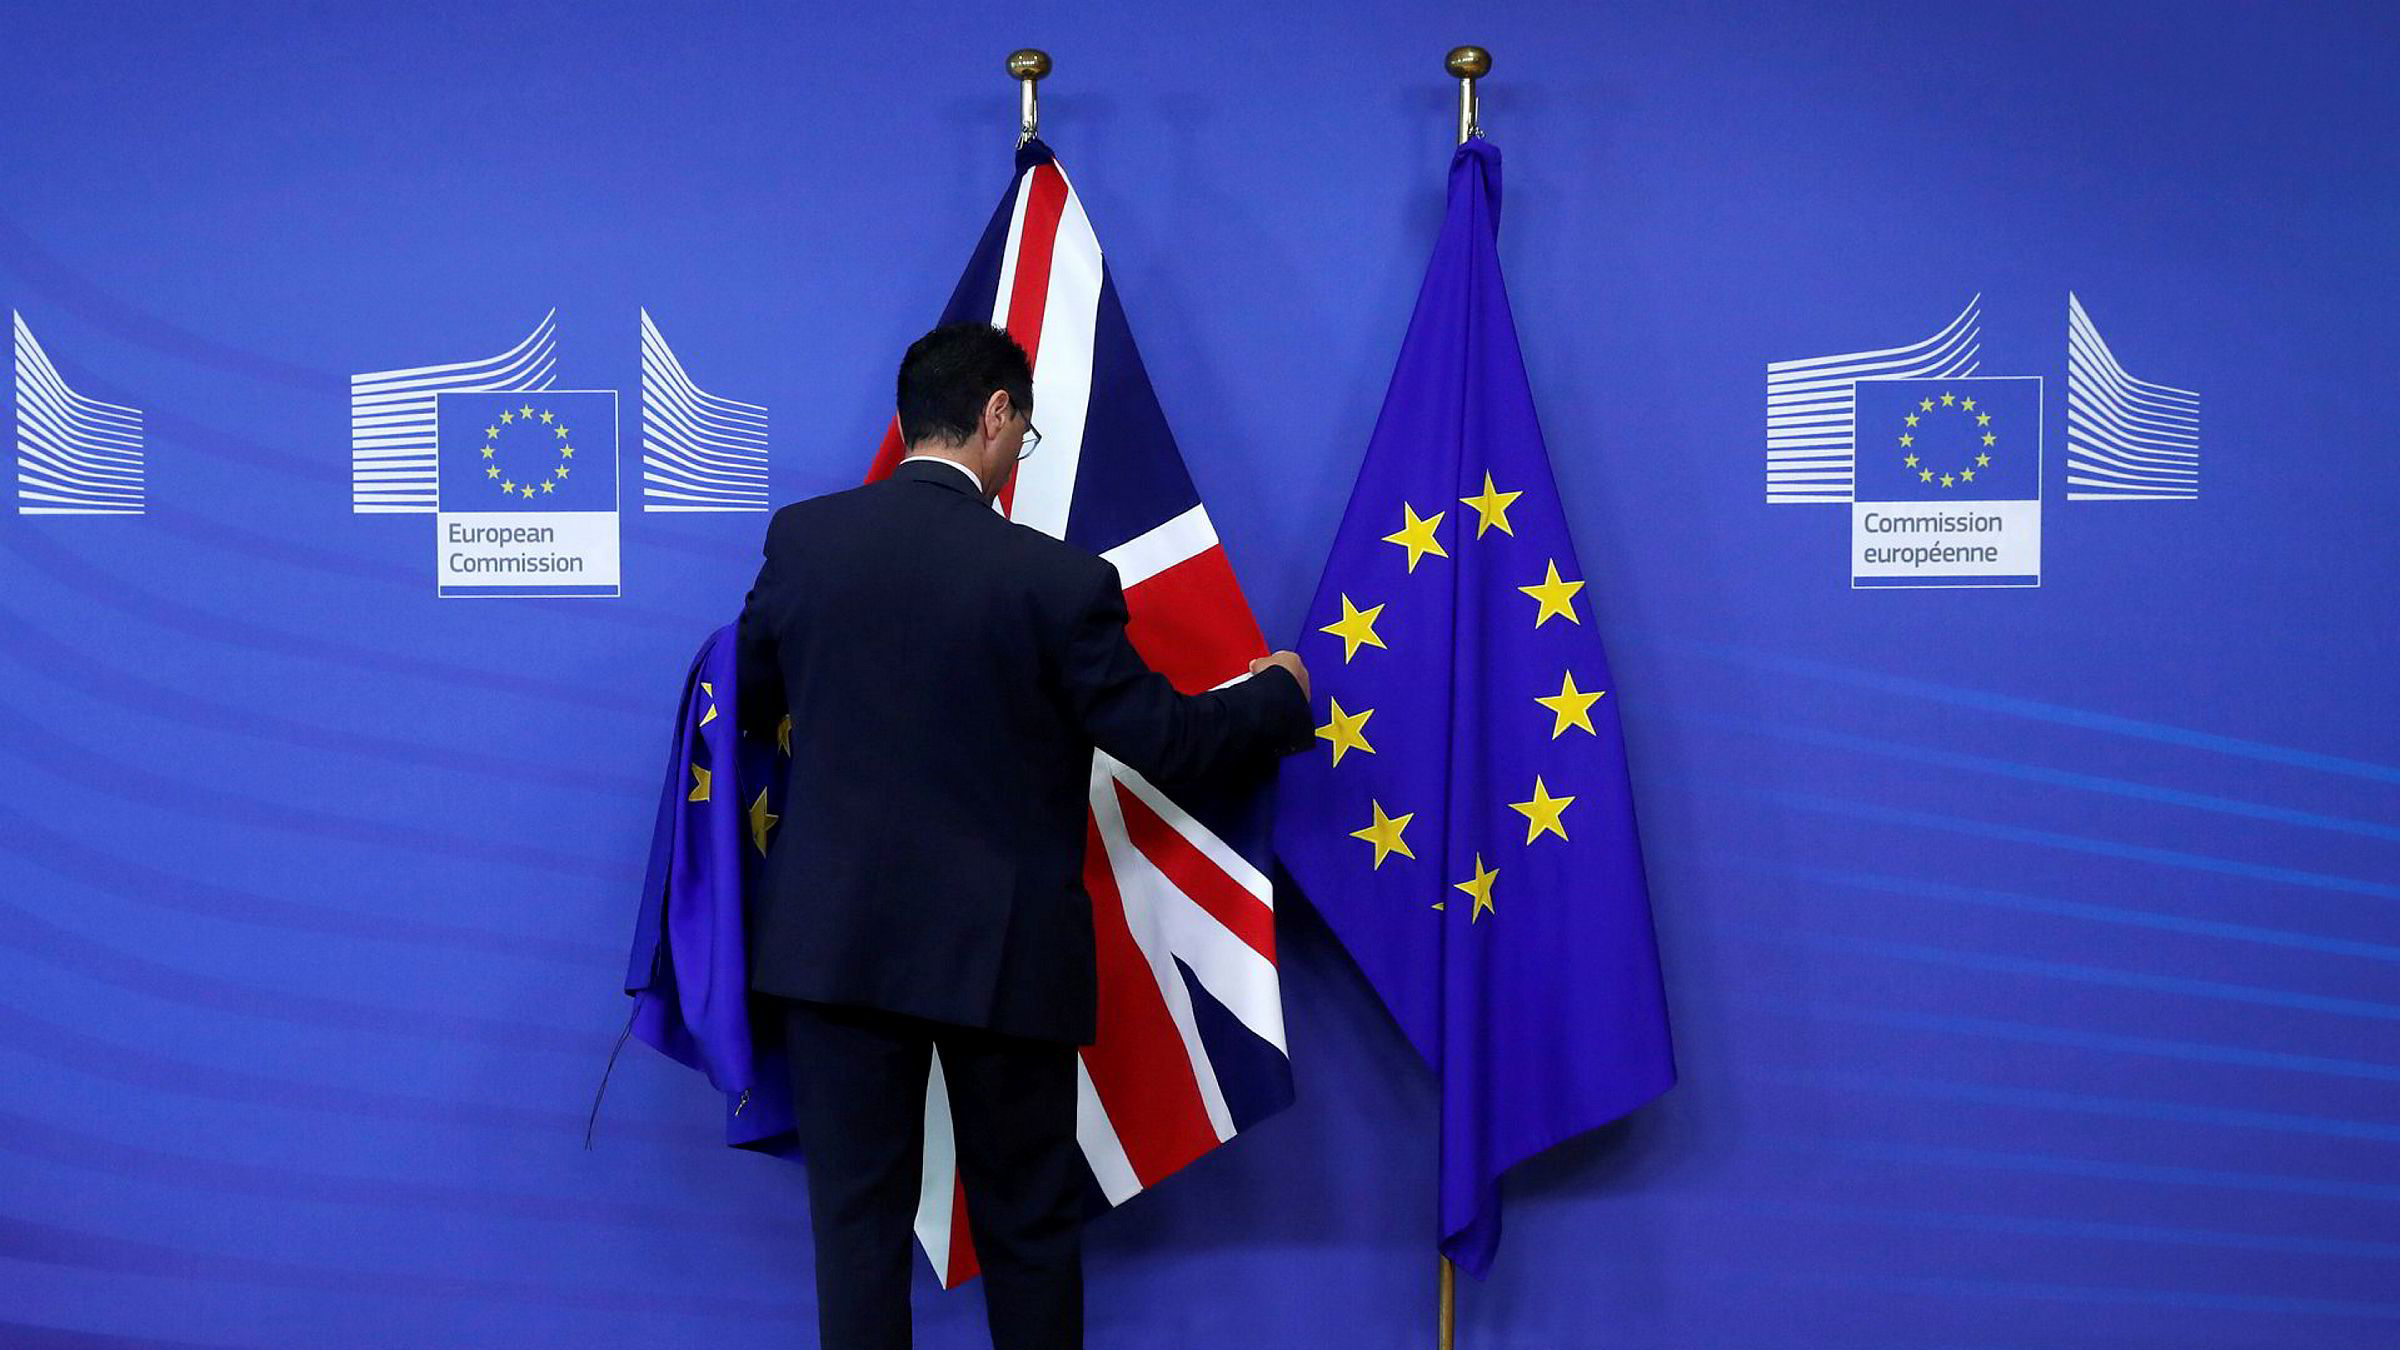 Flags are arranged at the EU Commission headquarters ahead of a first full round of talks on Brexit, Britain's divorce terms from the European Union, in Brussels, Belgium July 17, 2017. REUTERS/Yves Herman ---